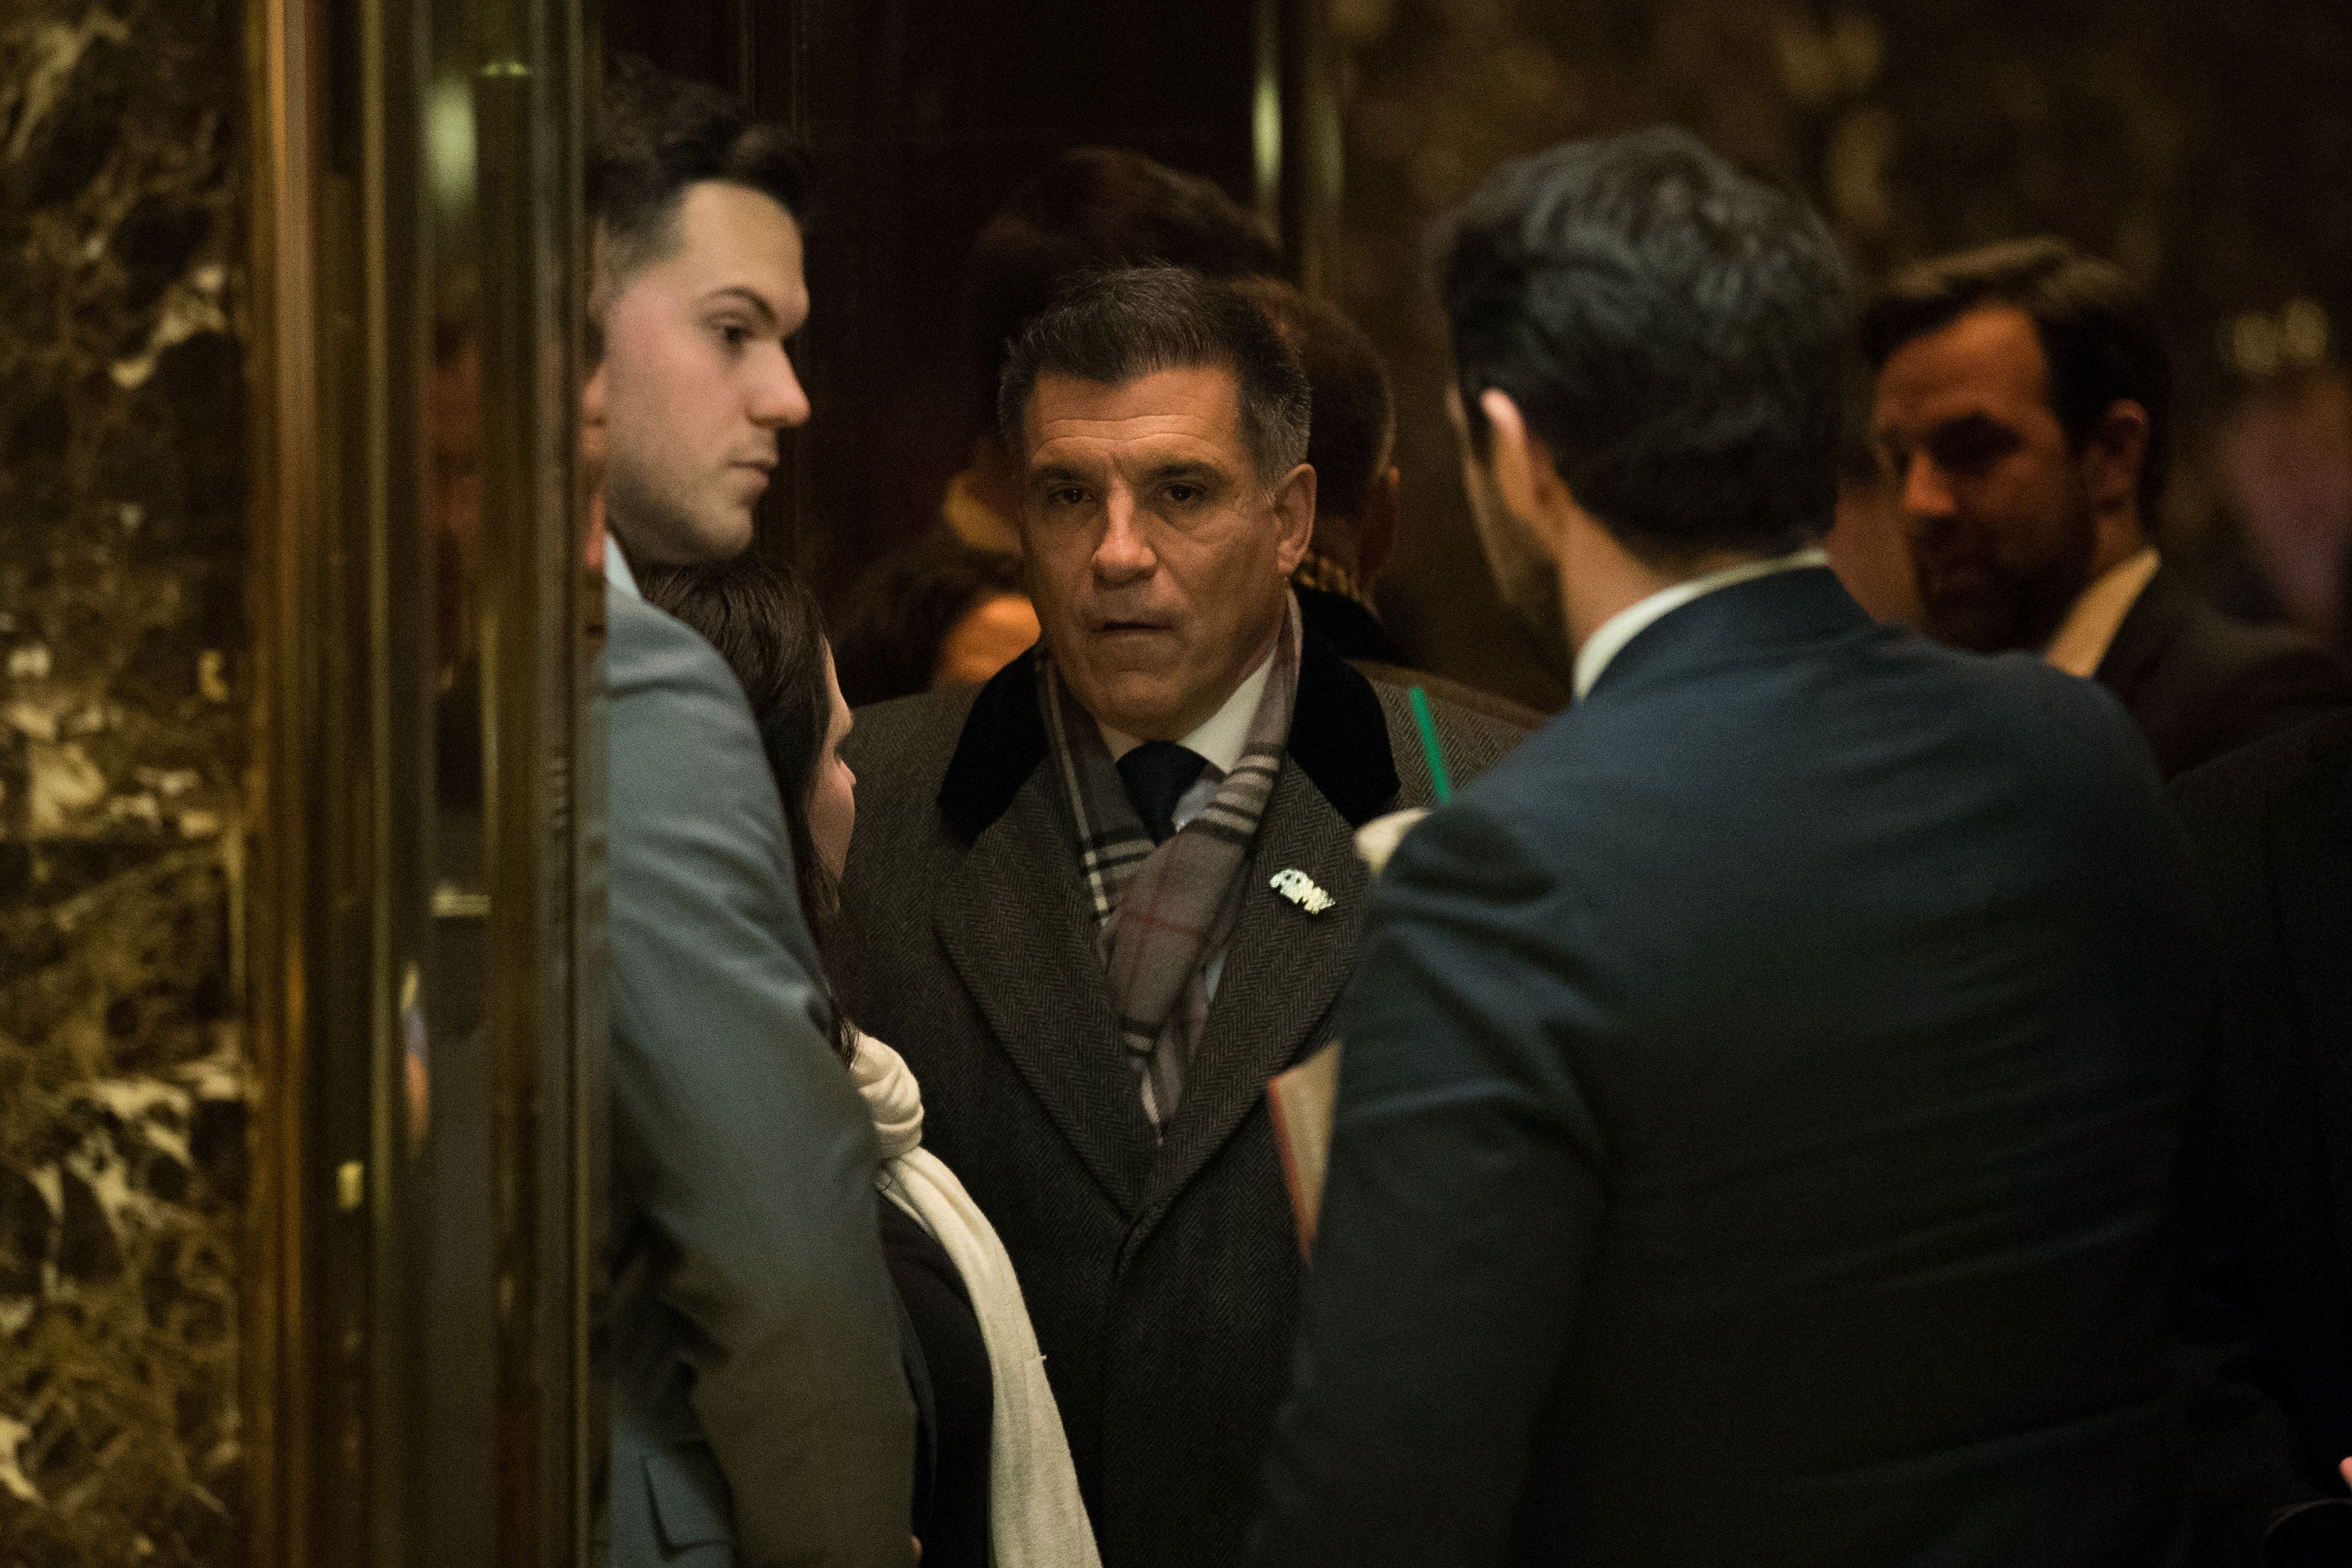 Vincent Viola, center, visited Trump Tower last week to meet with Donald Trump. (Getty Images)